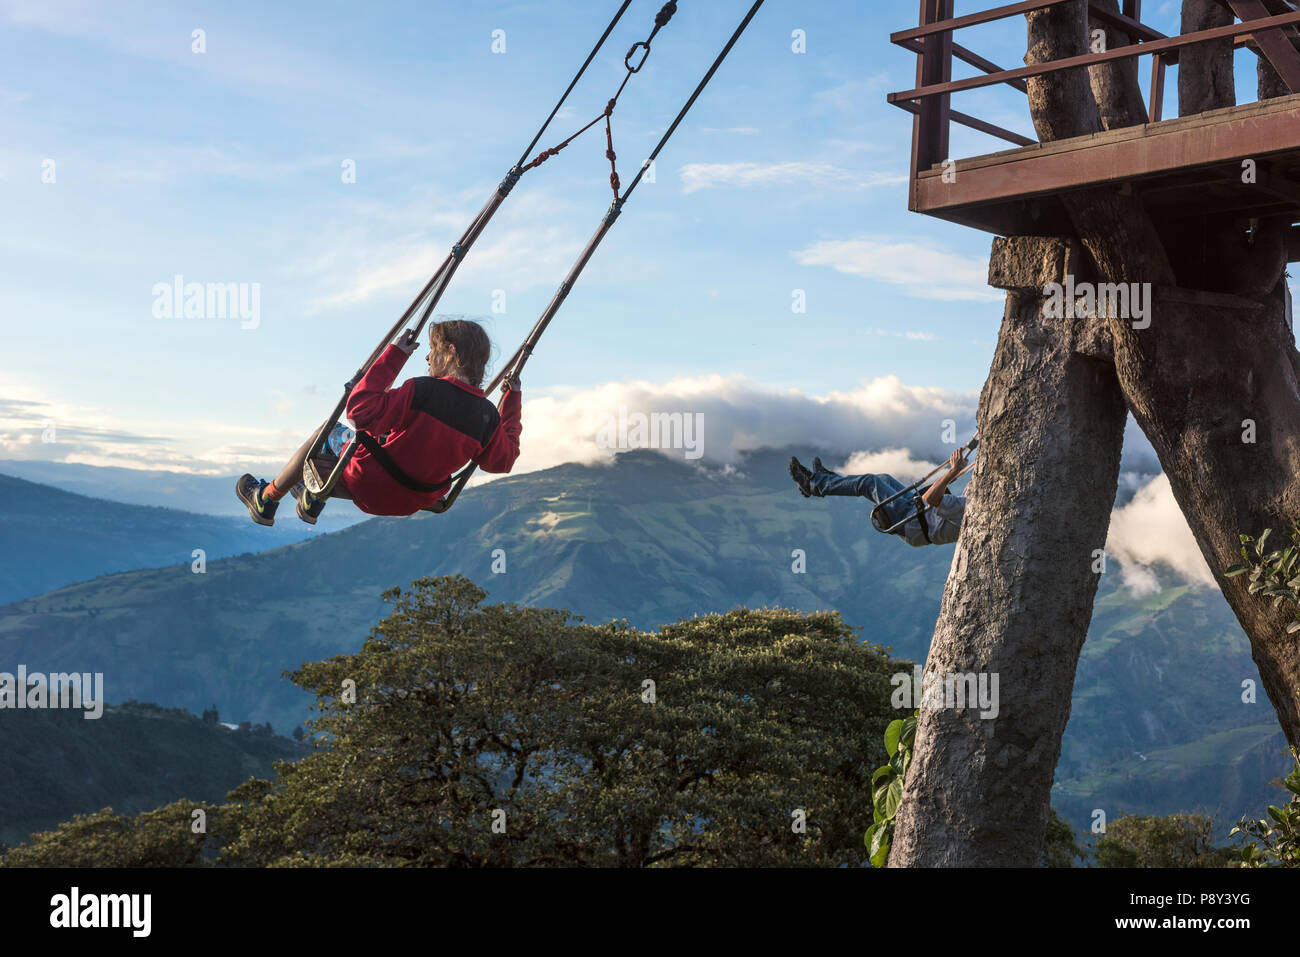 Banos, Ecuador - November 22, 2017: The Swing At The End Of The World Located At Casa Del Arbol, The Tree House In Banos De Aqua Santa, Ecuador, South - Stock Image